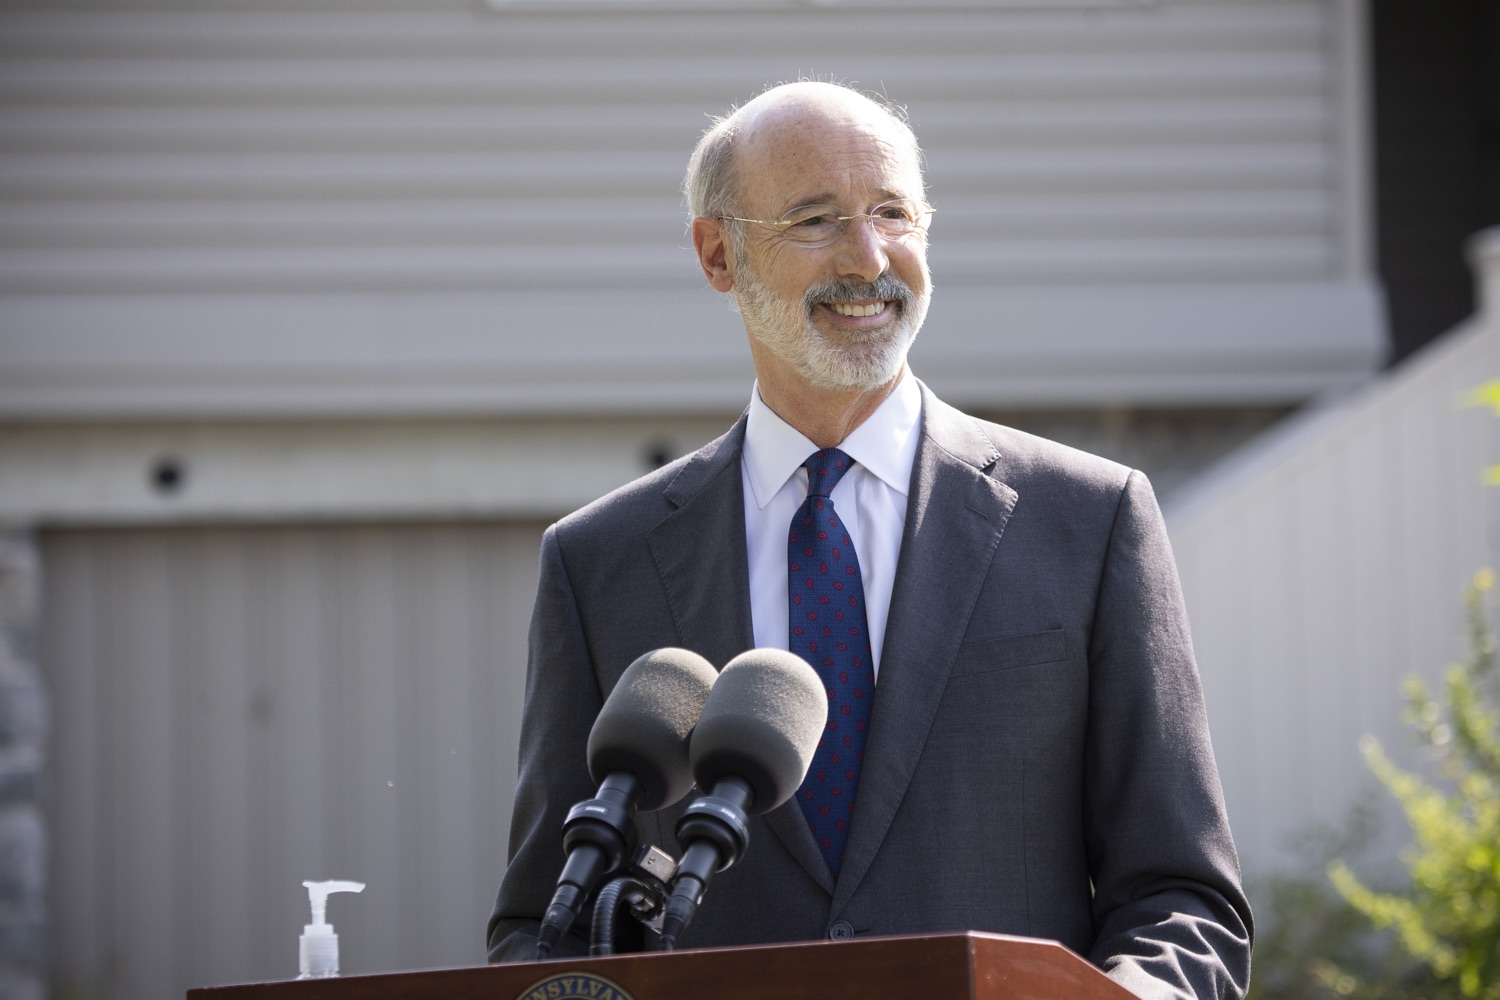 "<a href=""https://filesource.wostreaming.net/commonwealthofpa/photo/18248_gov_evictions_dz_039.jpg"" target=""_blank"">⇣ Download Photo<br></a>Pennsylvania Governor Tom Wolf speaking to the press. With rent and mortgage debt mounting for hundreds of thousands of Pennsylvanians, Governor Tom Wolf is calling on the General Assembly to fix a state relief program to prevent many families from becoming homeless and enact a moratorium on evictions and foreclosures until the end of the year. The governor was joined today by legislators and housing advocates at a press conference in Lancaster County. Harrisburg, PA  Sept. 8, 2020"